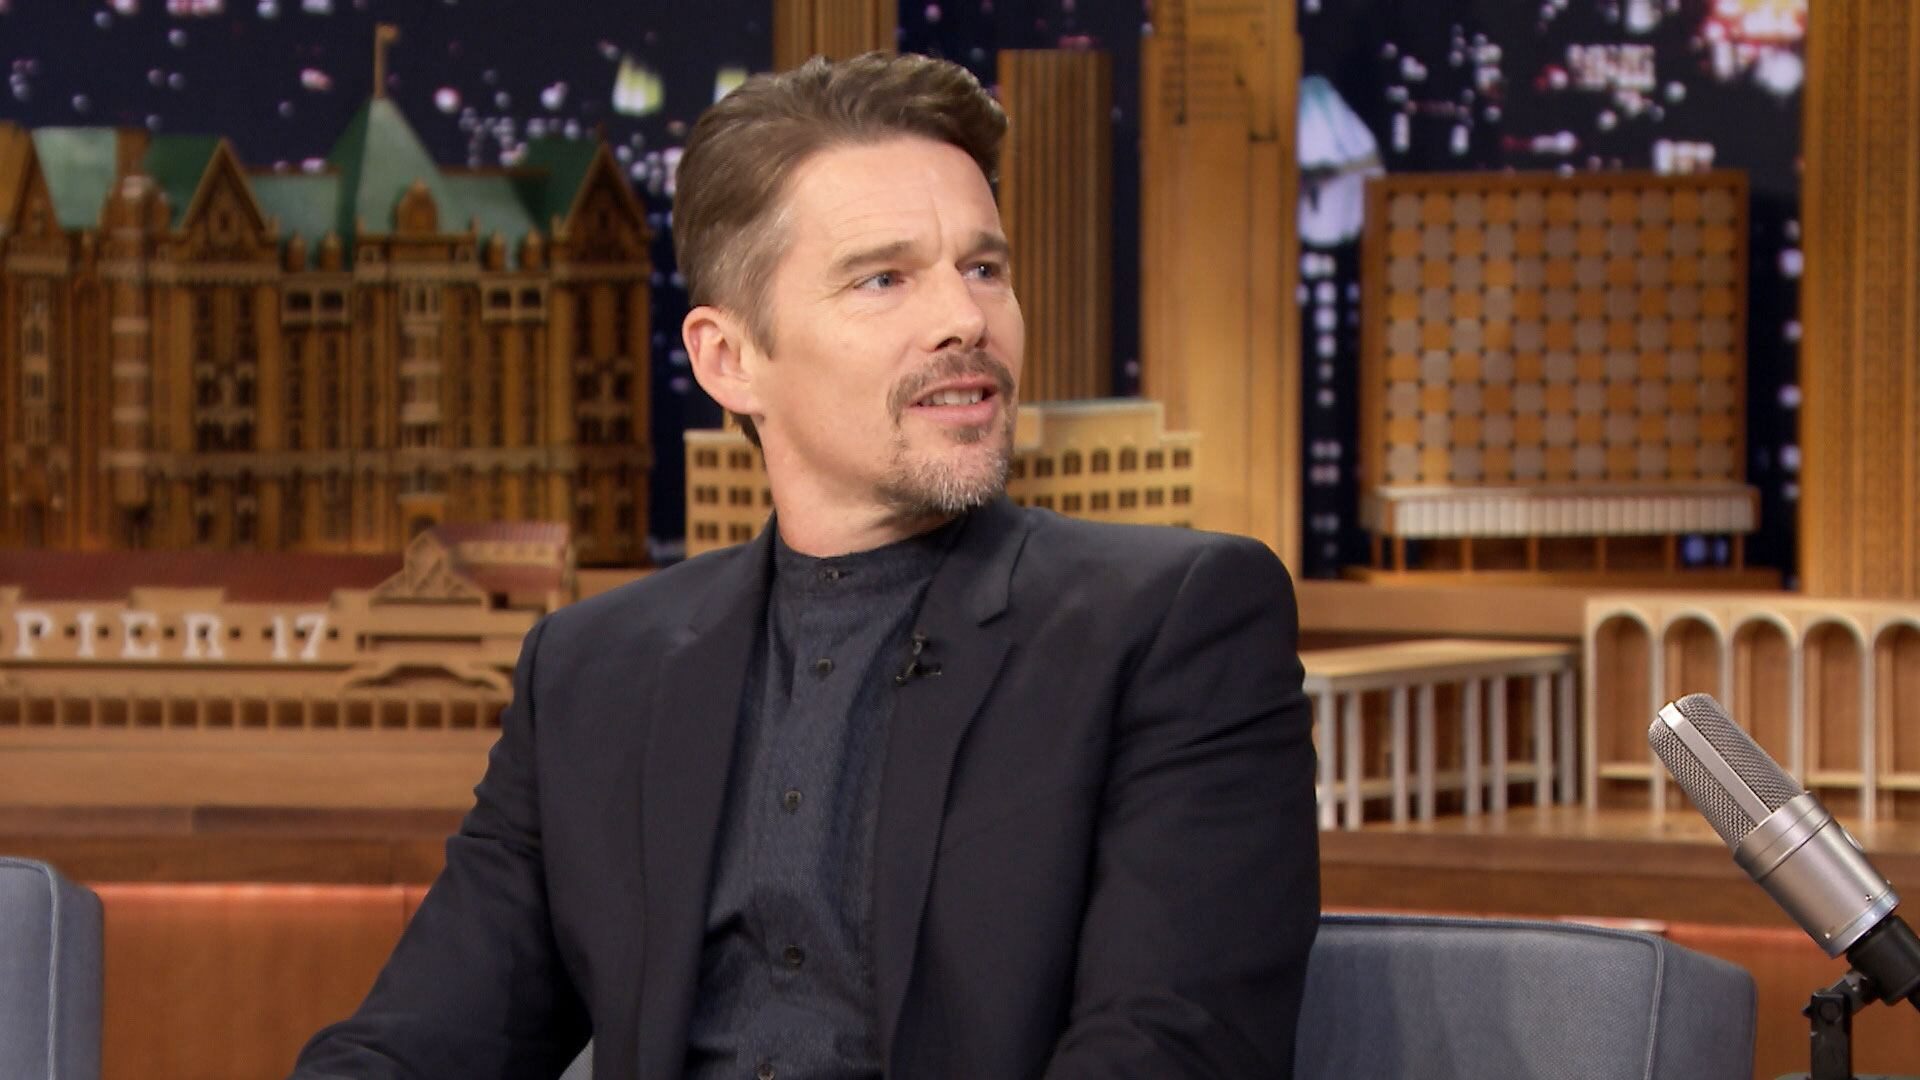 Ethan Hawke Showers in Jimmy's Embarrassing SNL Jacket